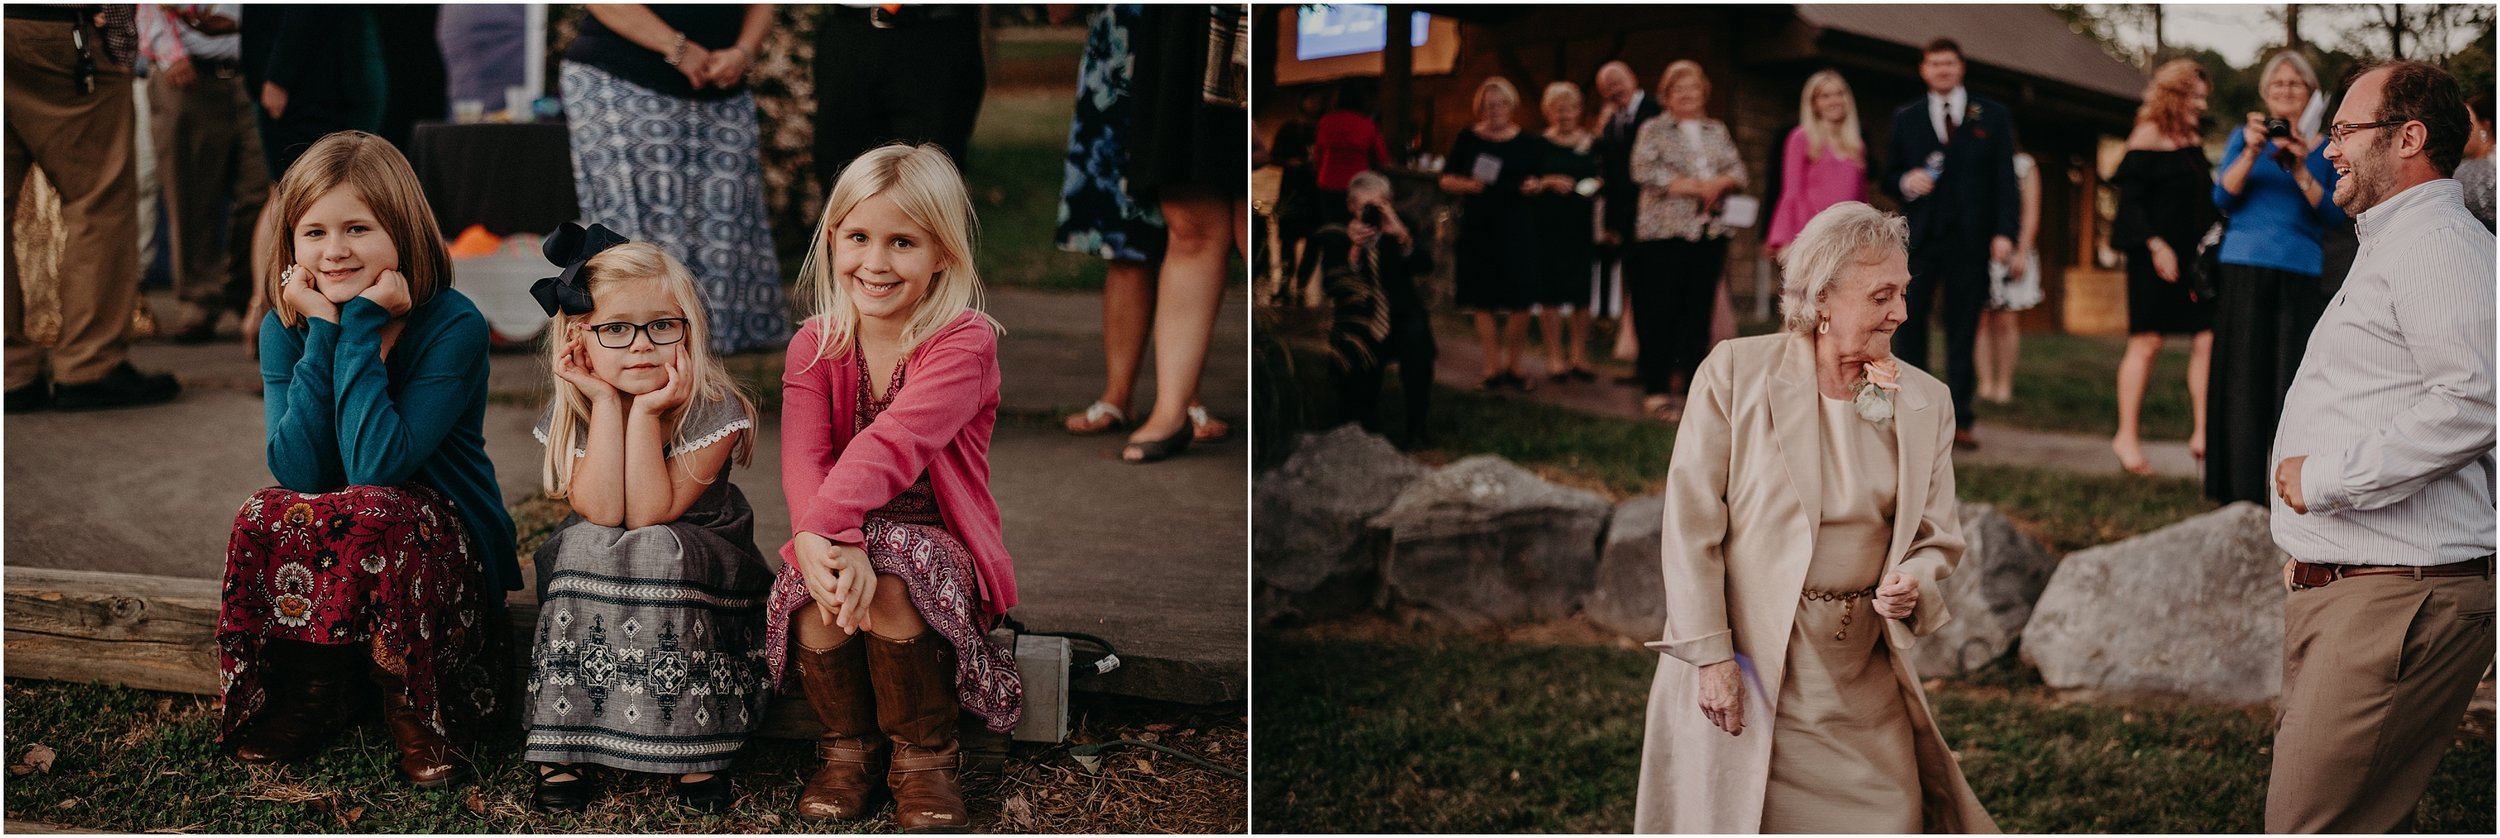 Kids watch adult dance during reception